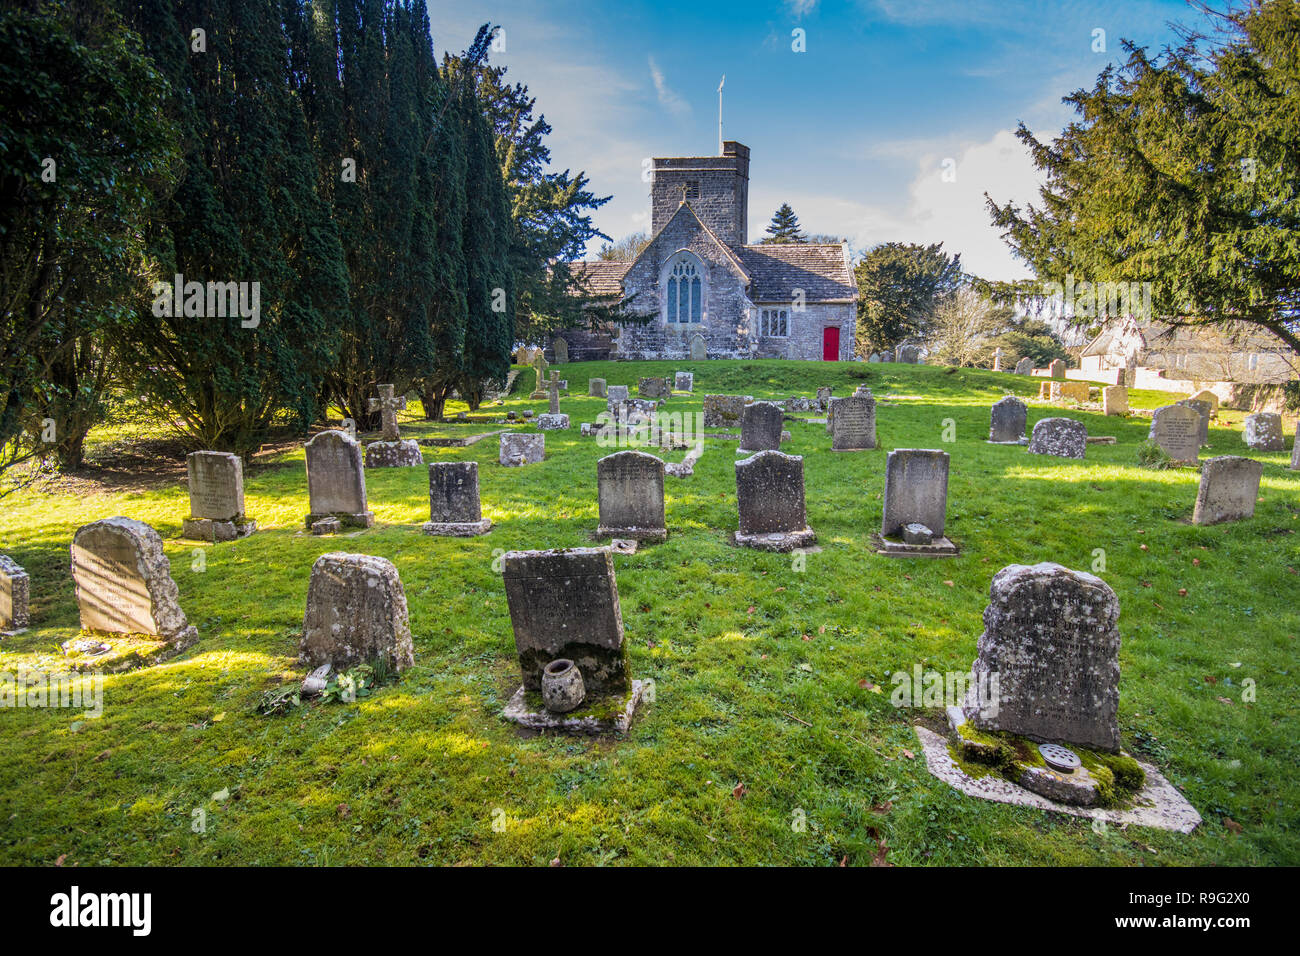 St Michael and All Angels Church, Steeple, near Warhead, Dorset, UK - Stock Image